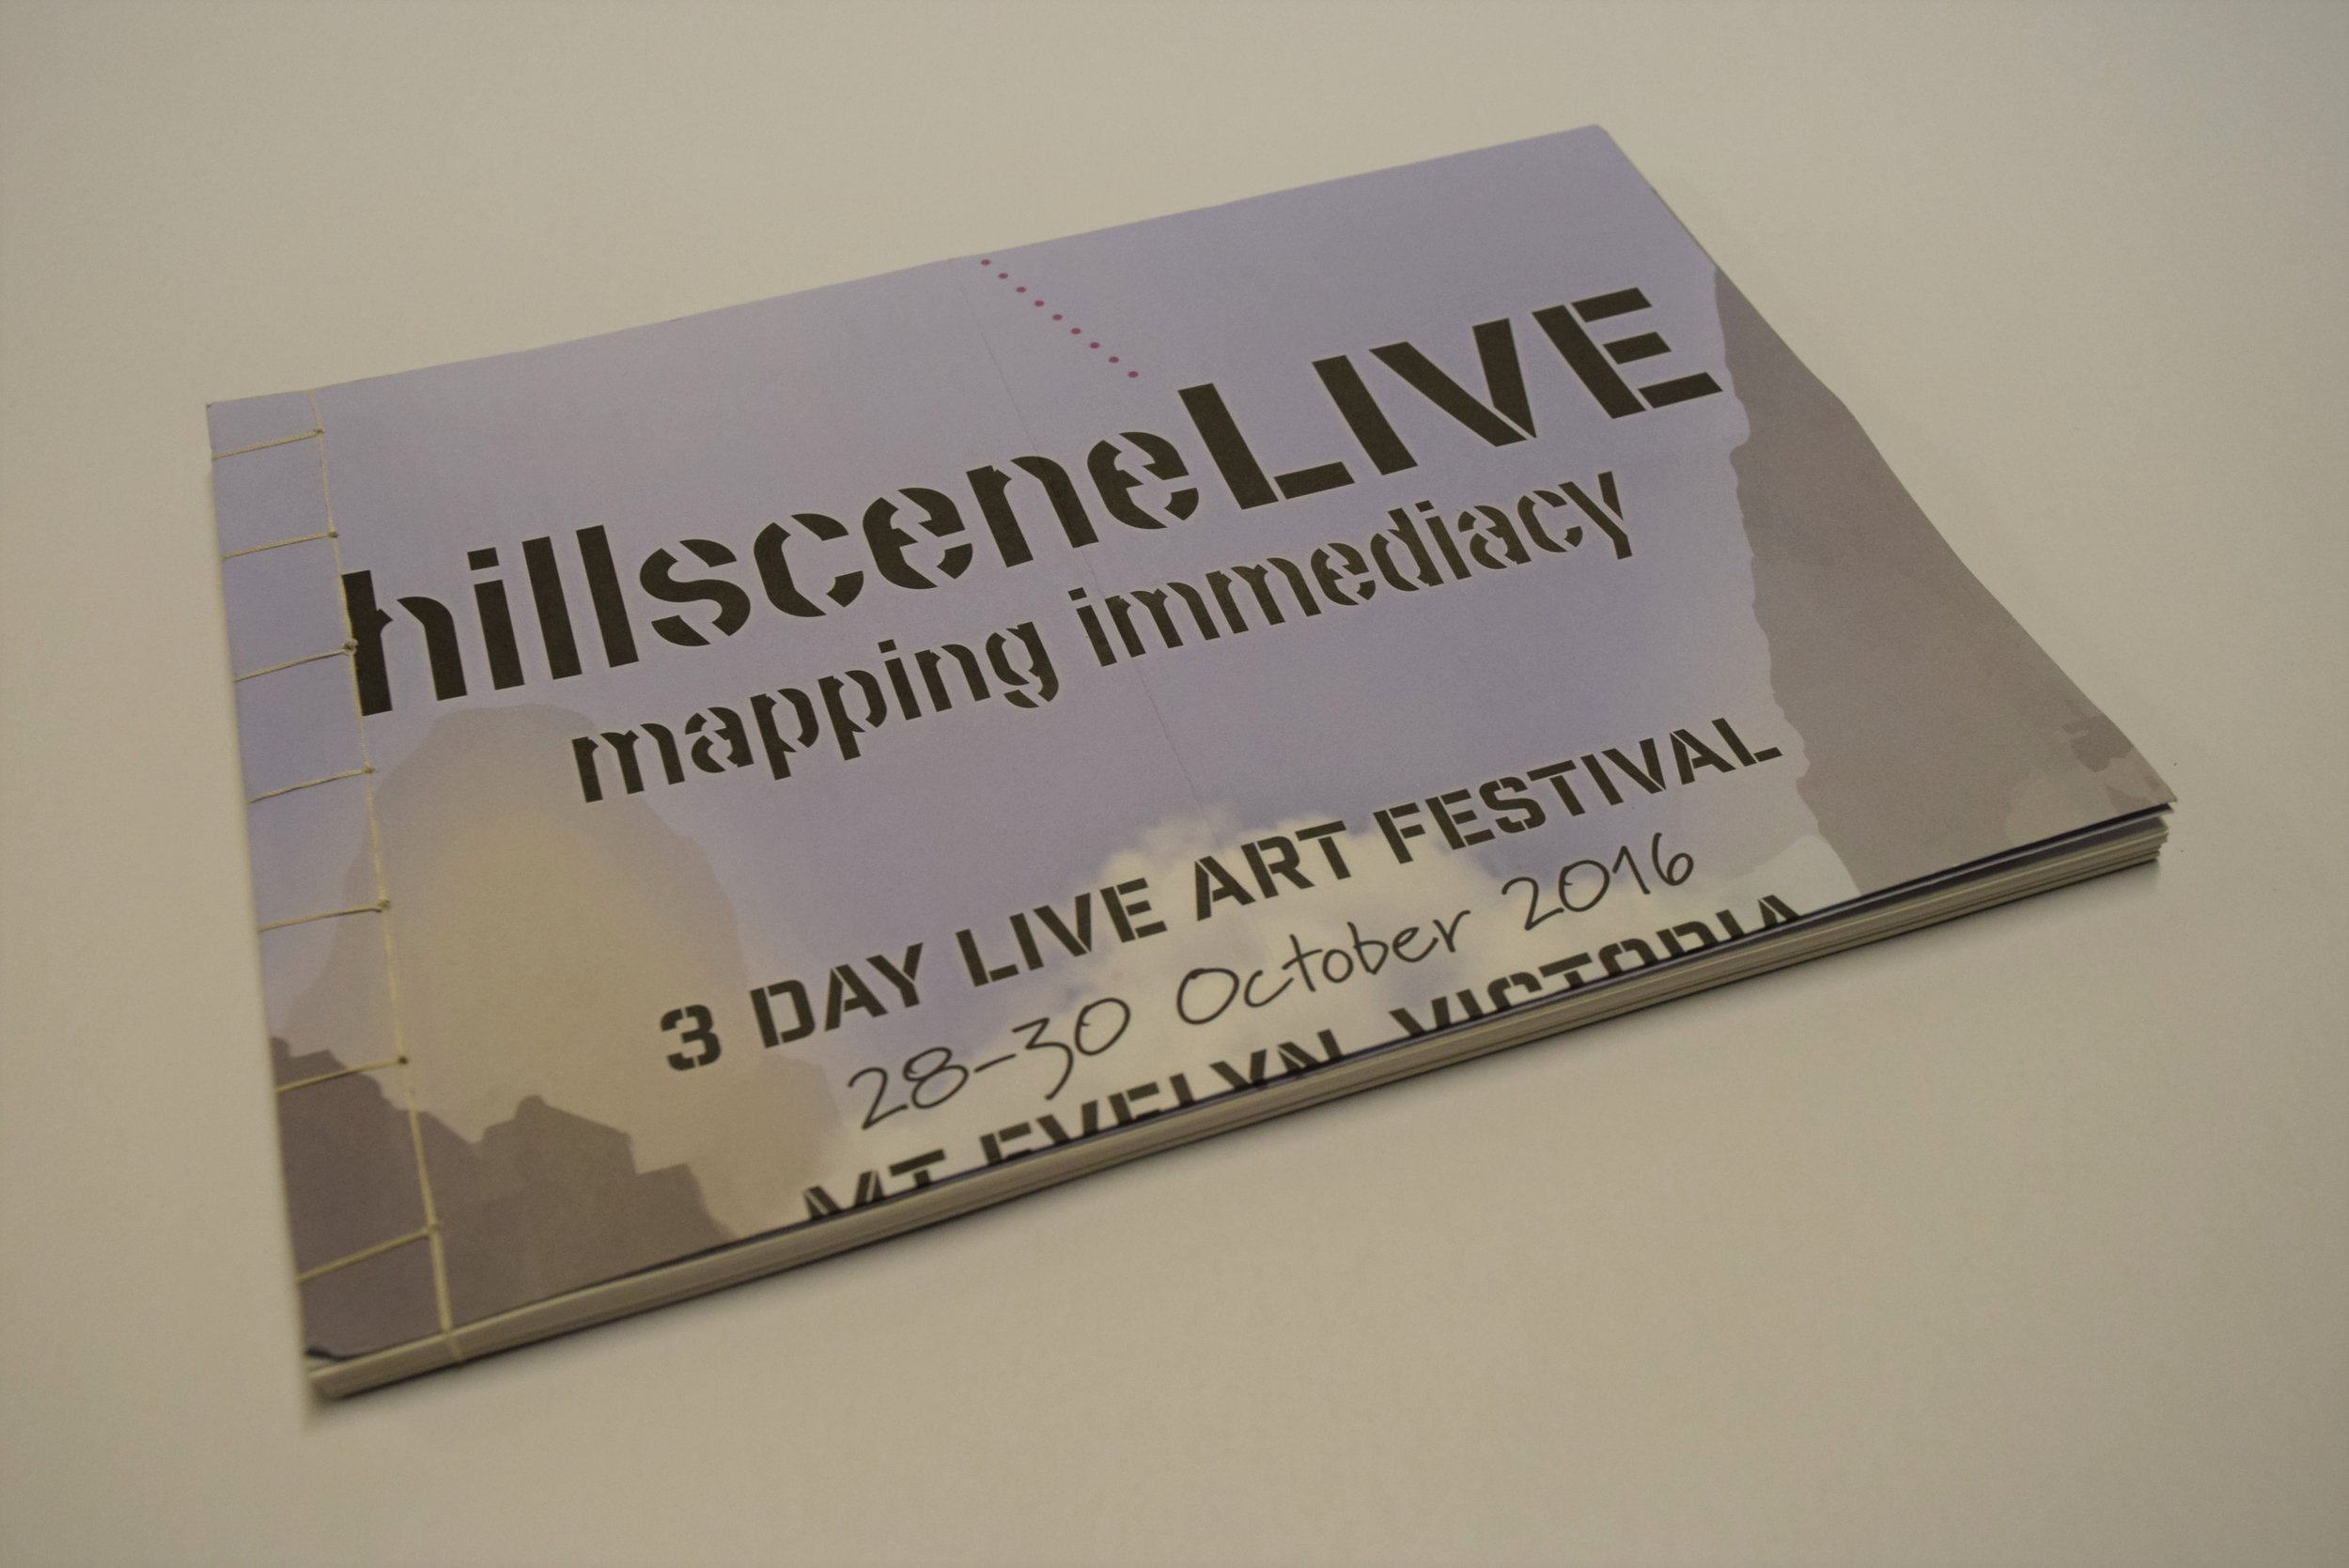 In October 2016 I took part in hillsceneLIVE, a three-day arts festival in Mount Evelyn, Victoria. I asked participants to create a collage which was then photocopied and folded into an 8 page zine. A flat copy of each creation was bound using Japanese stab stitch.